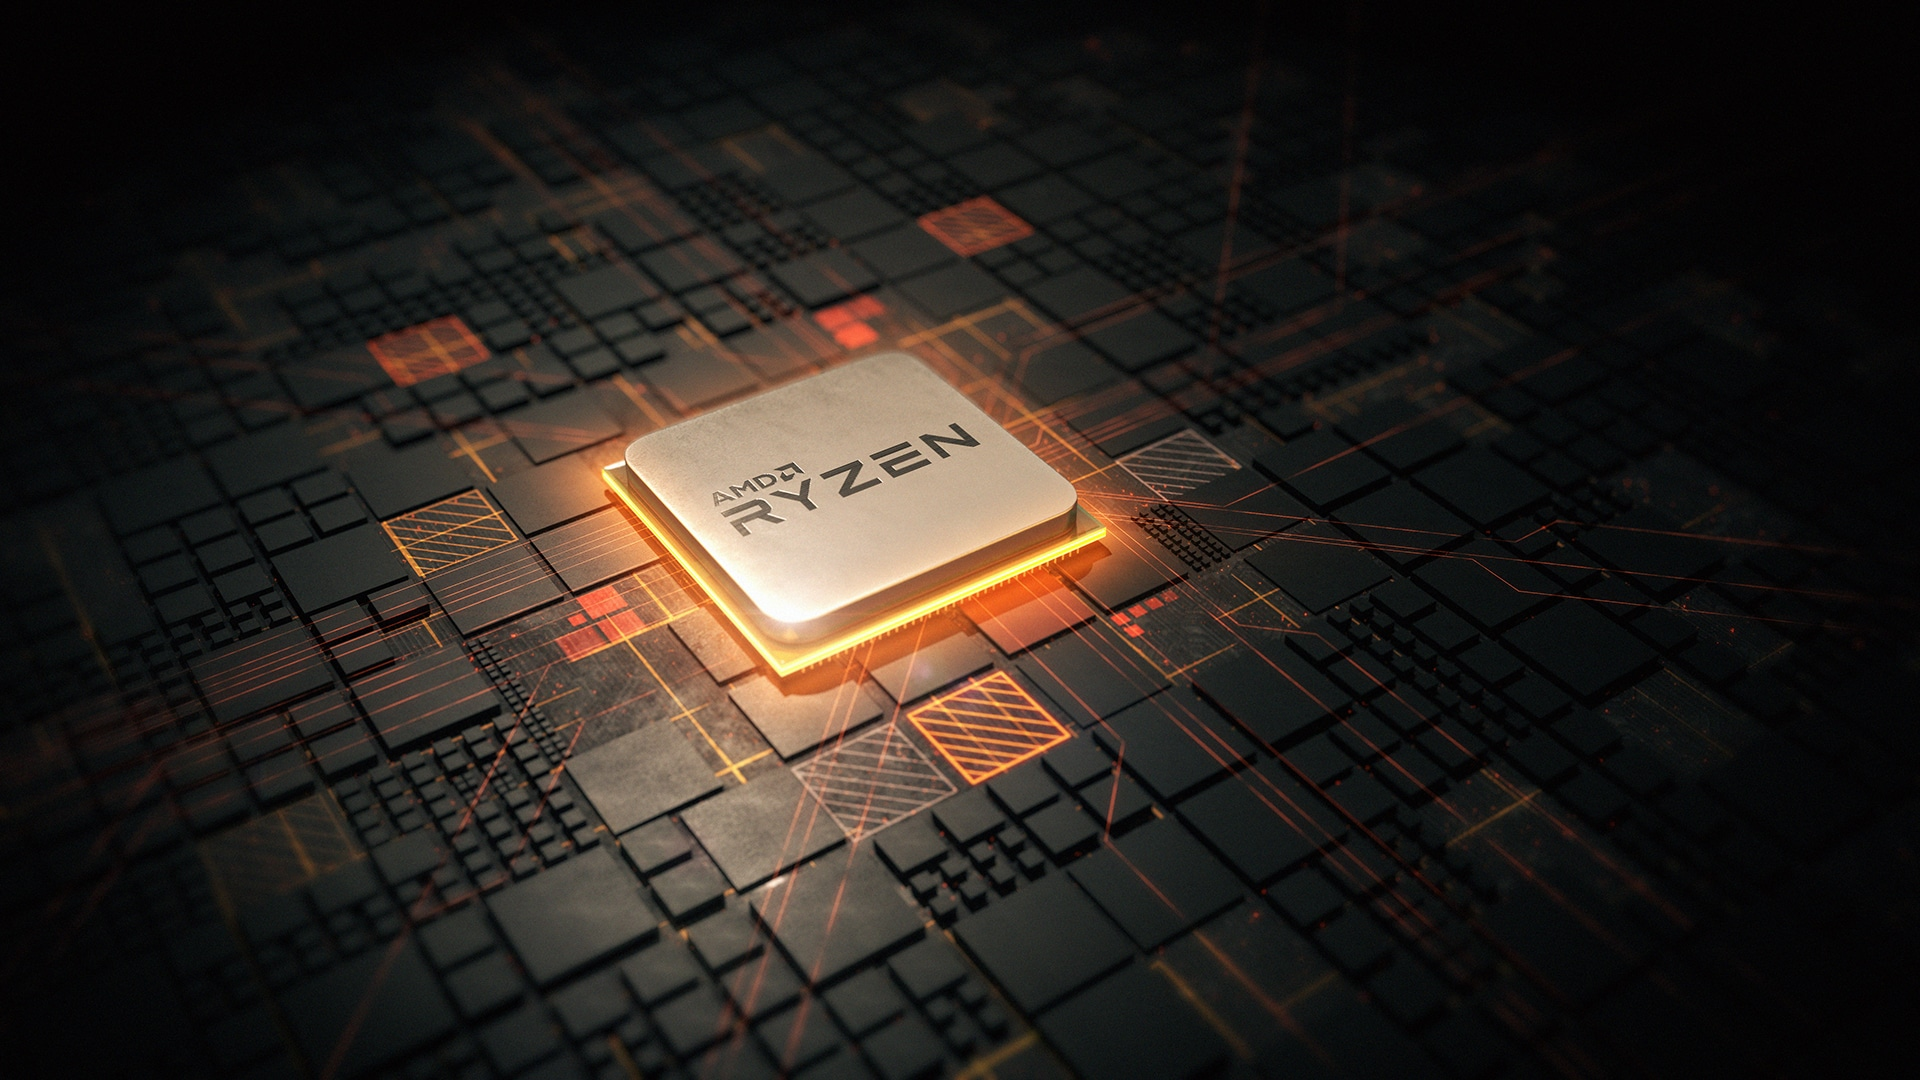 Amd Ryzen 5 3600xt Performance Lackluster Claims Leaked Review